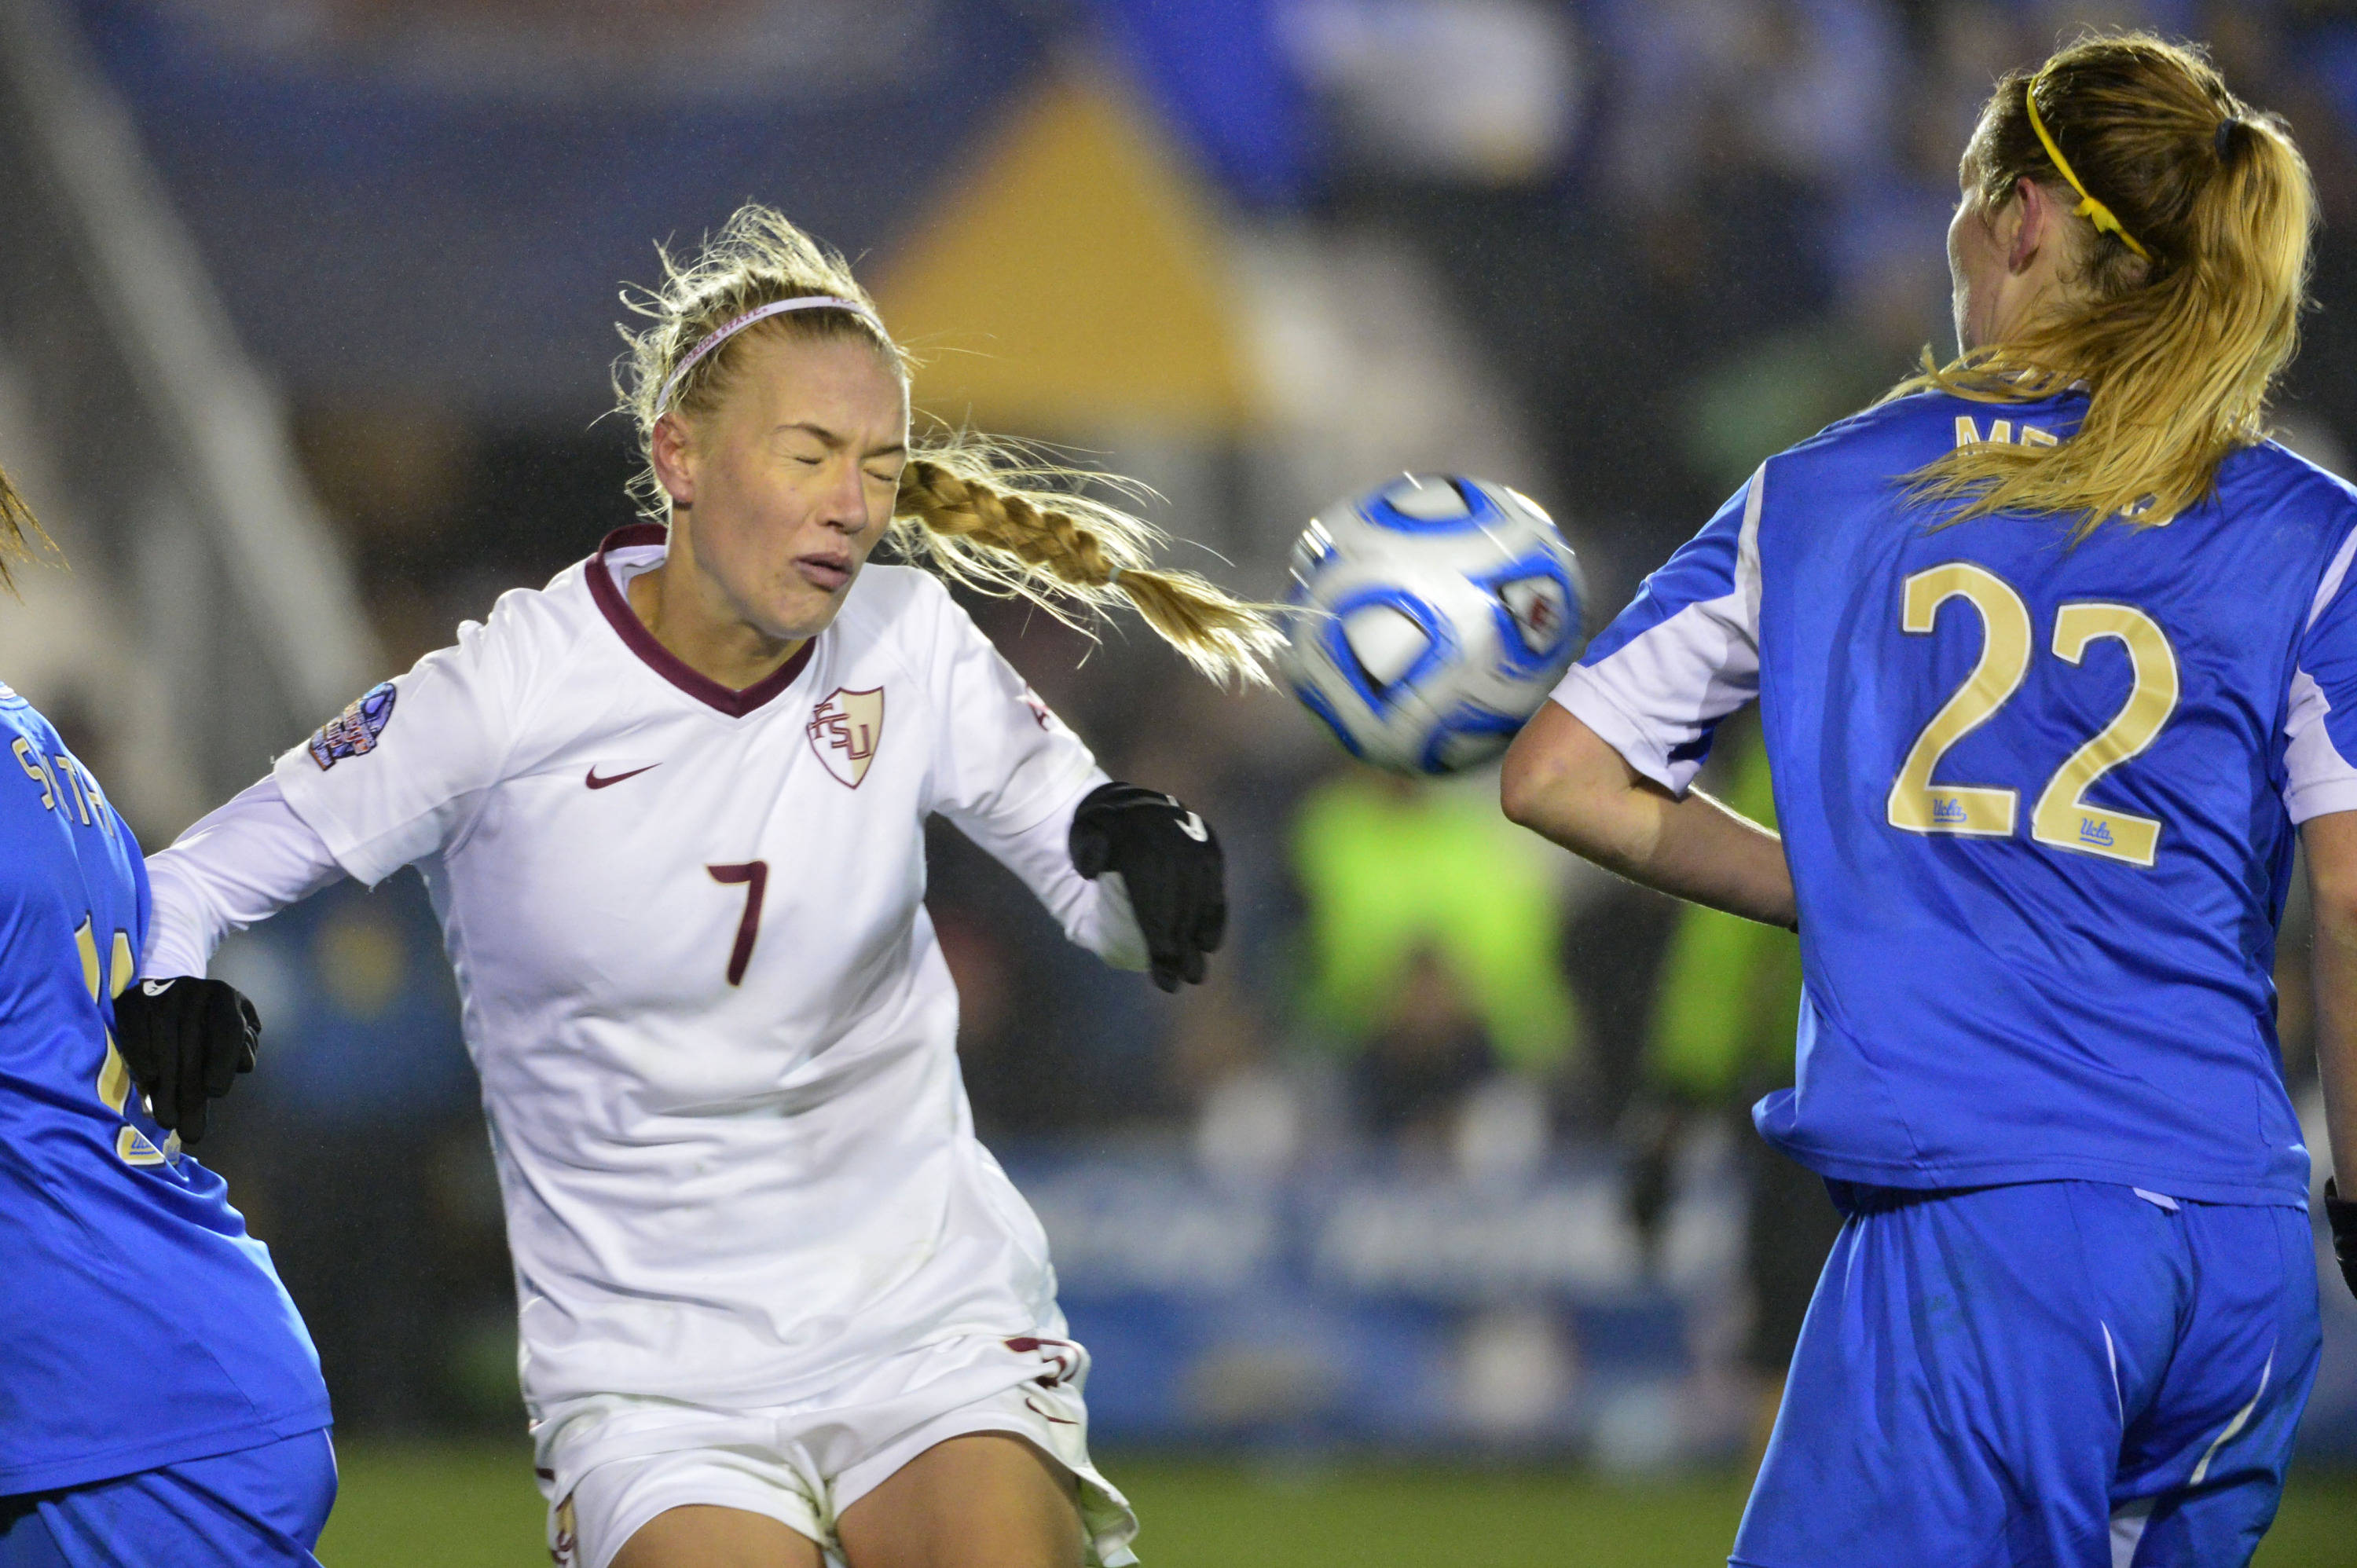 Dec 8, 2013; Cary, NC, USA; Florida State Seminoles midfielder Dagny Brynjarsdottir (7) heads the ball as UCLA Bruins forward Taylor Smith (14) and midfield/forward Sam Mewis (22) defend. The Bruins defeated the Seminoles 1-0 in overtime at WakeMed Soccer Park. Mandatory Credit: Bob Donnan-USA TODAY Sports